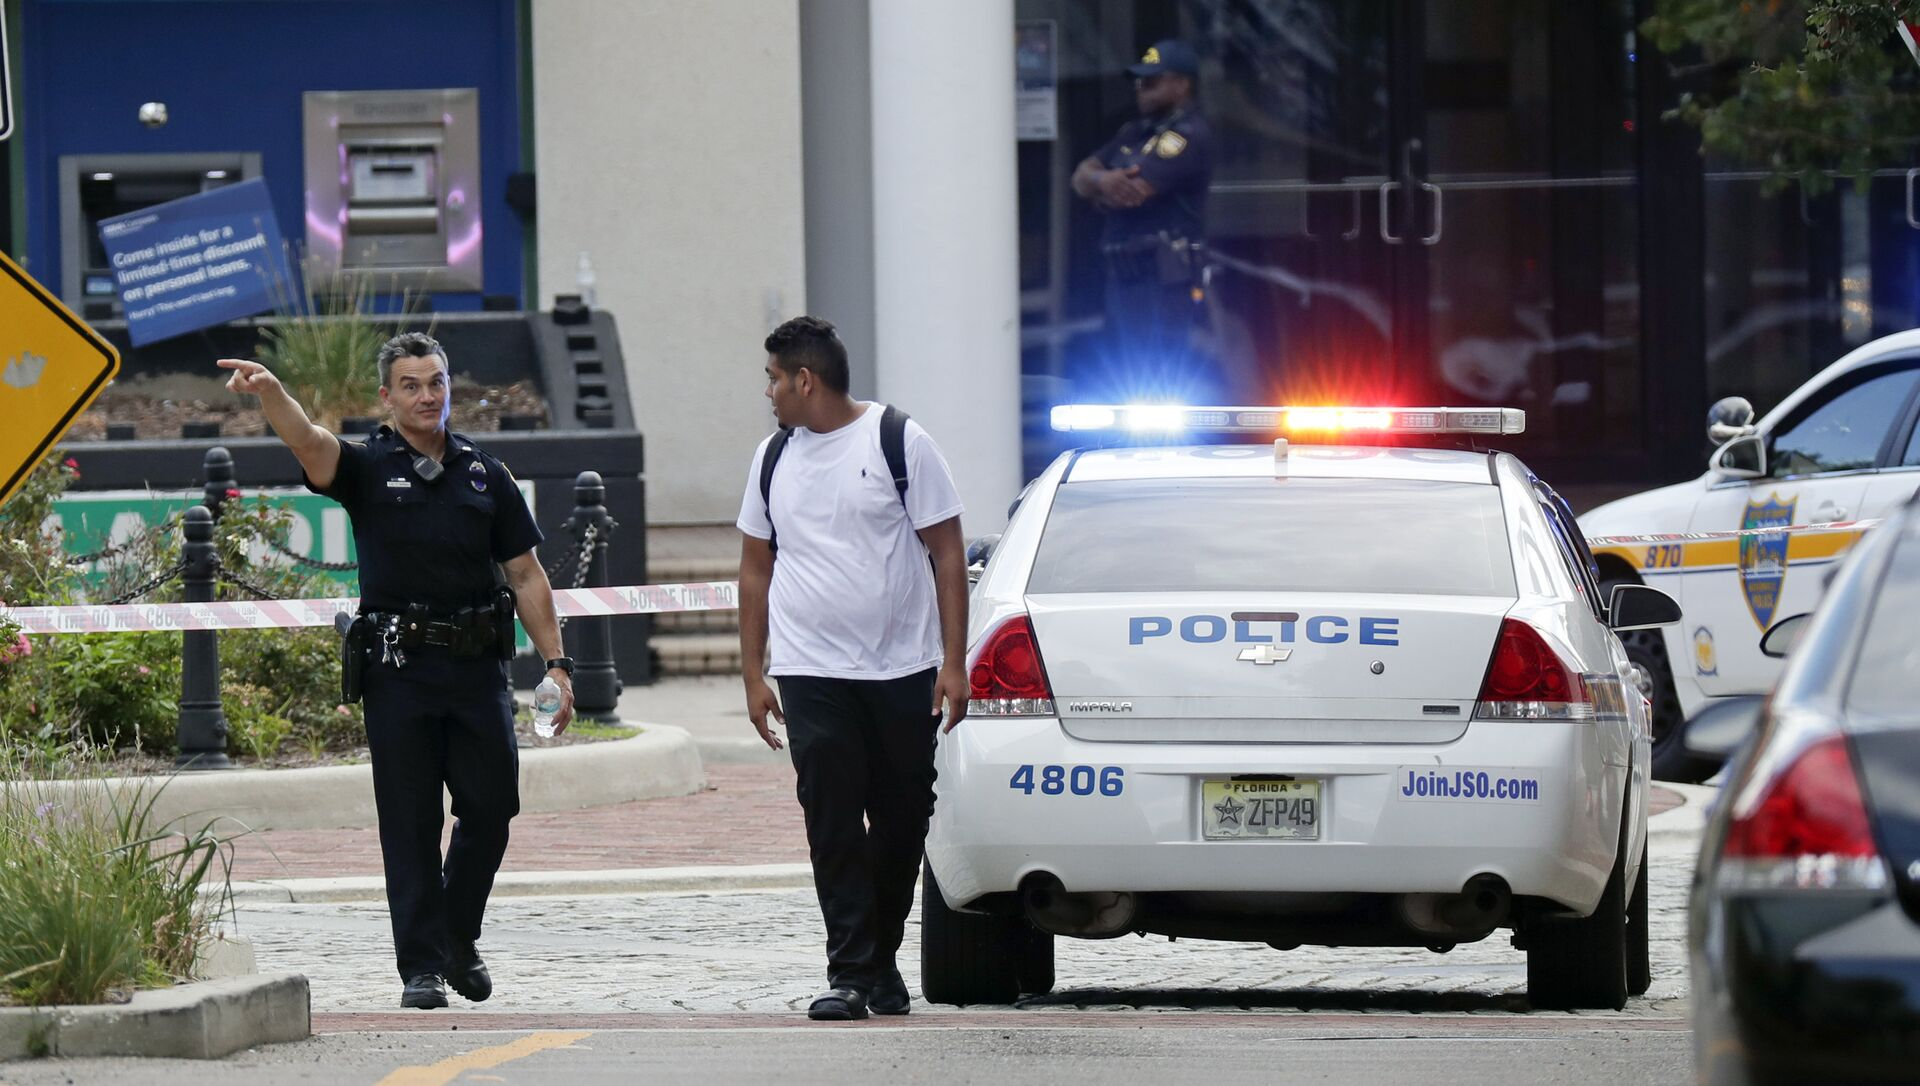 A police officer directs a pedestrian away from a blocked-off area near the scene of a mass shooting at Jacksonville Landing in Jacksonville, Fla., Sunday, Aug. 26, 2018. - Sputnik International, 1920, 08.05.2021